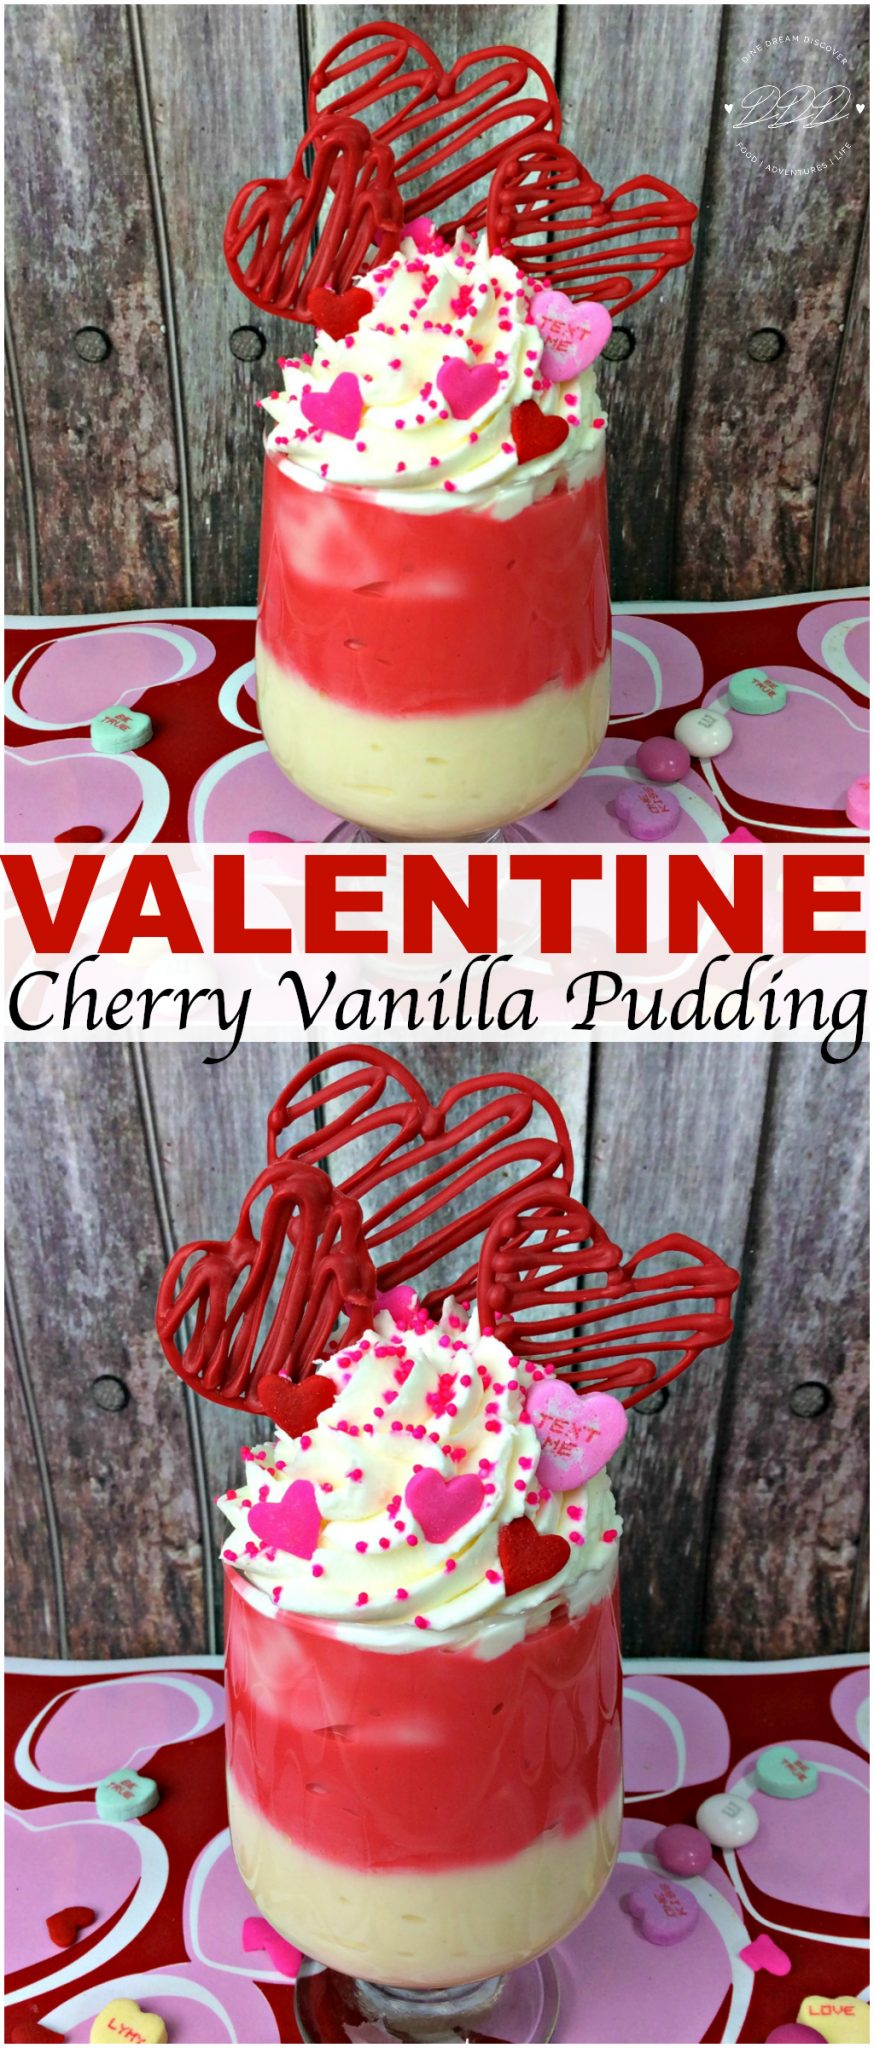 The Cherry Vanilla Pudding Valentines Day Treat is a delicious homemade cherry and vanilla pudding treat that will please even little ones tastebuds.